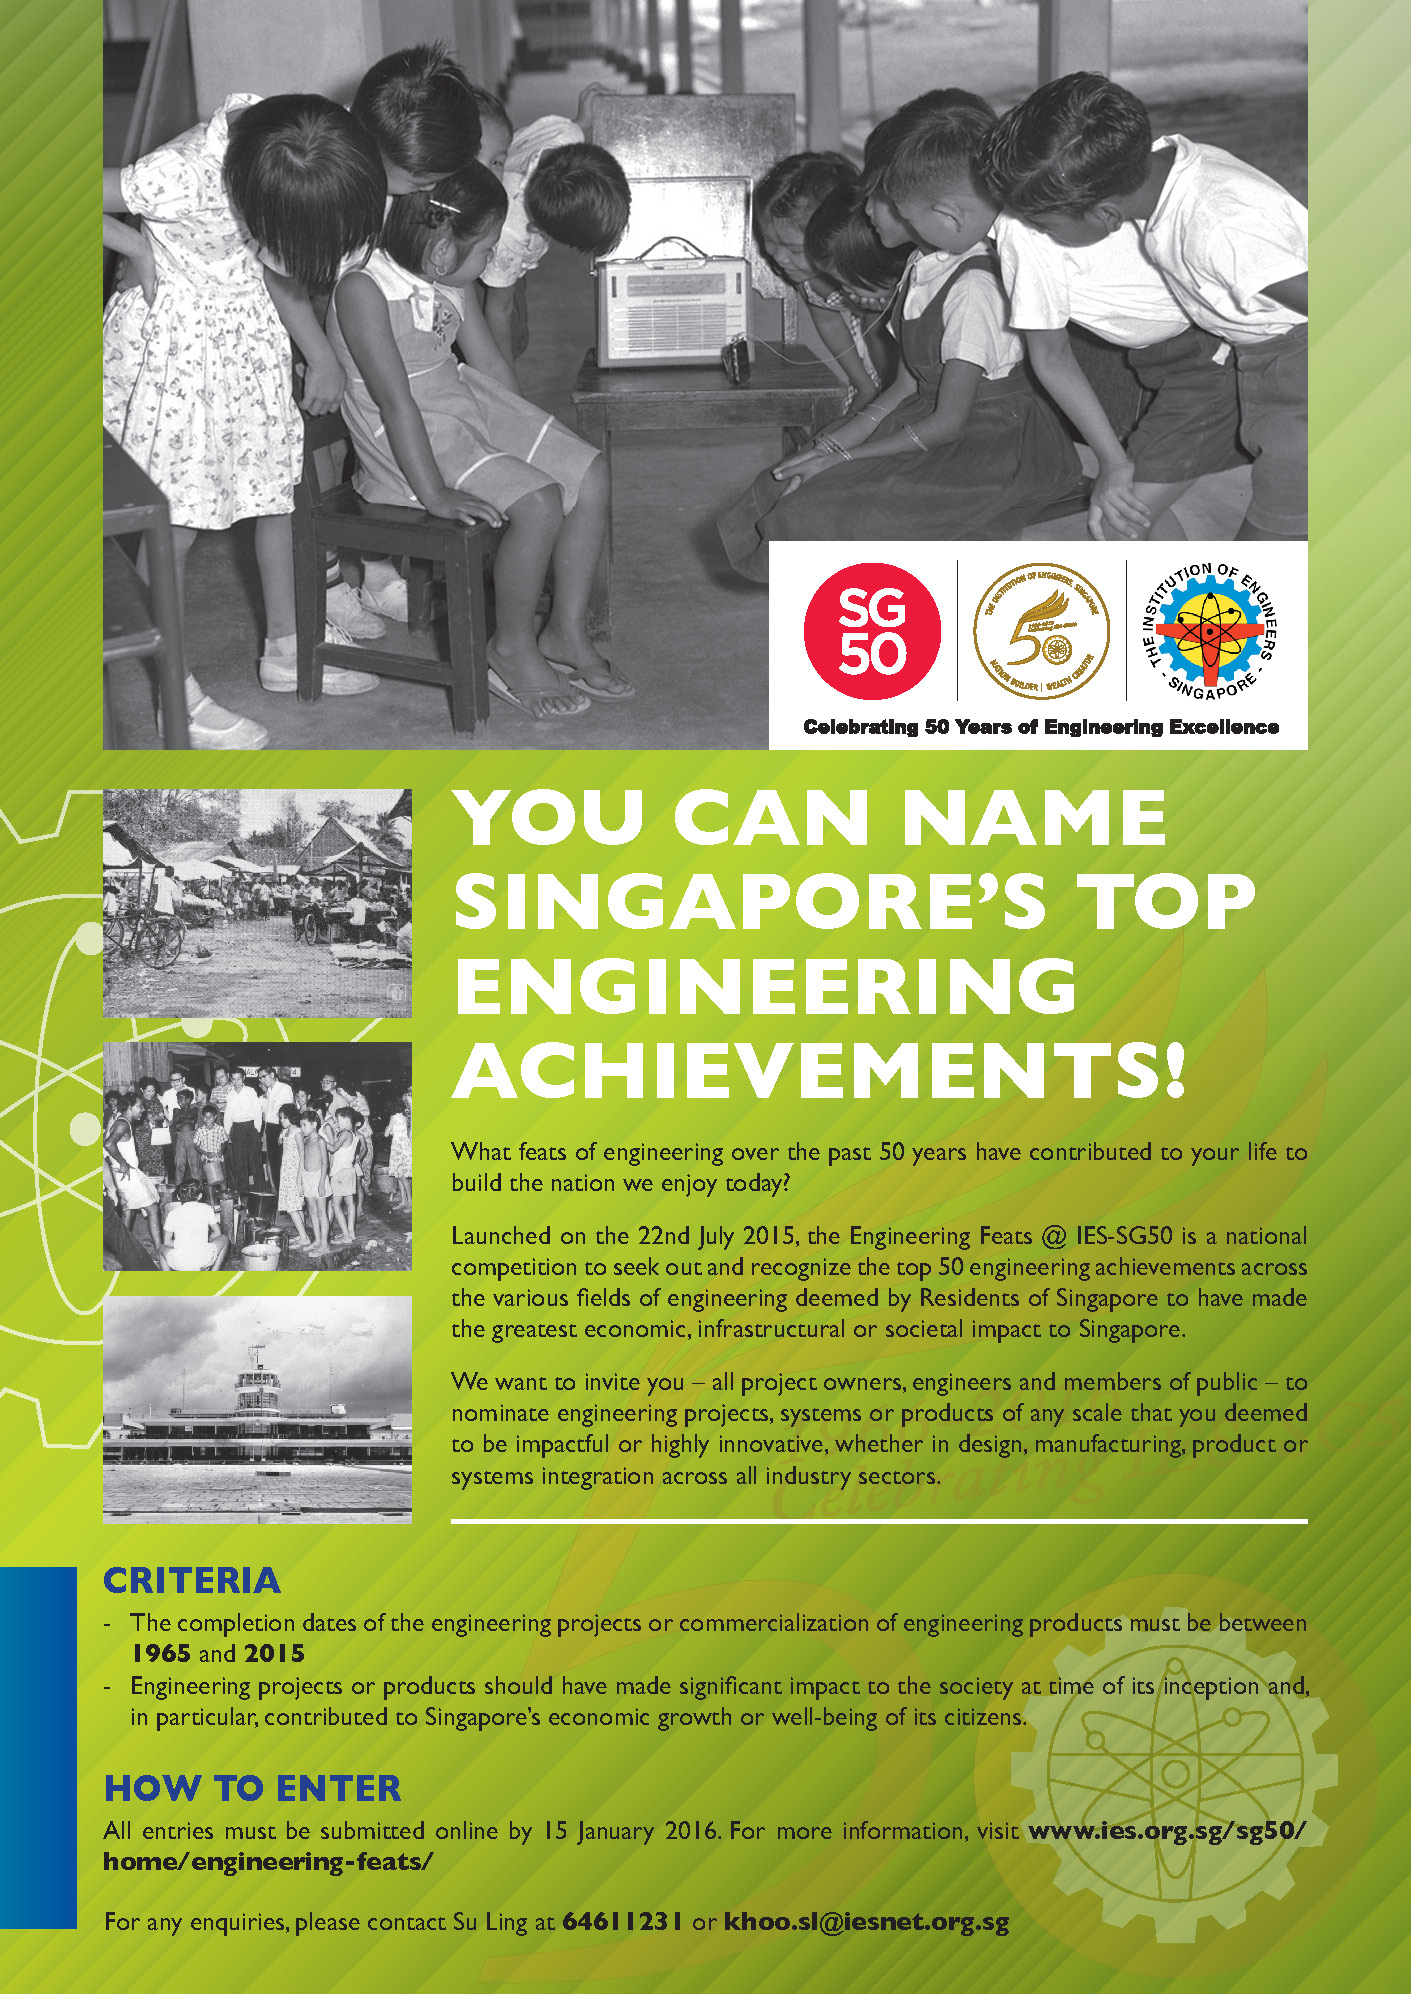 Engineering Feats flyer